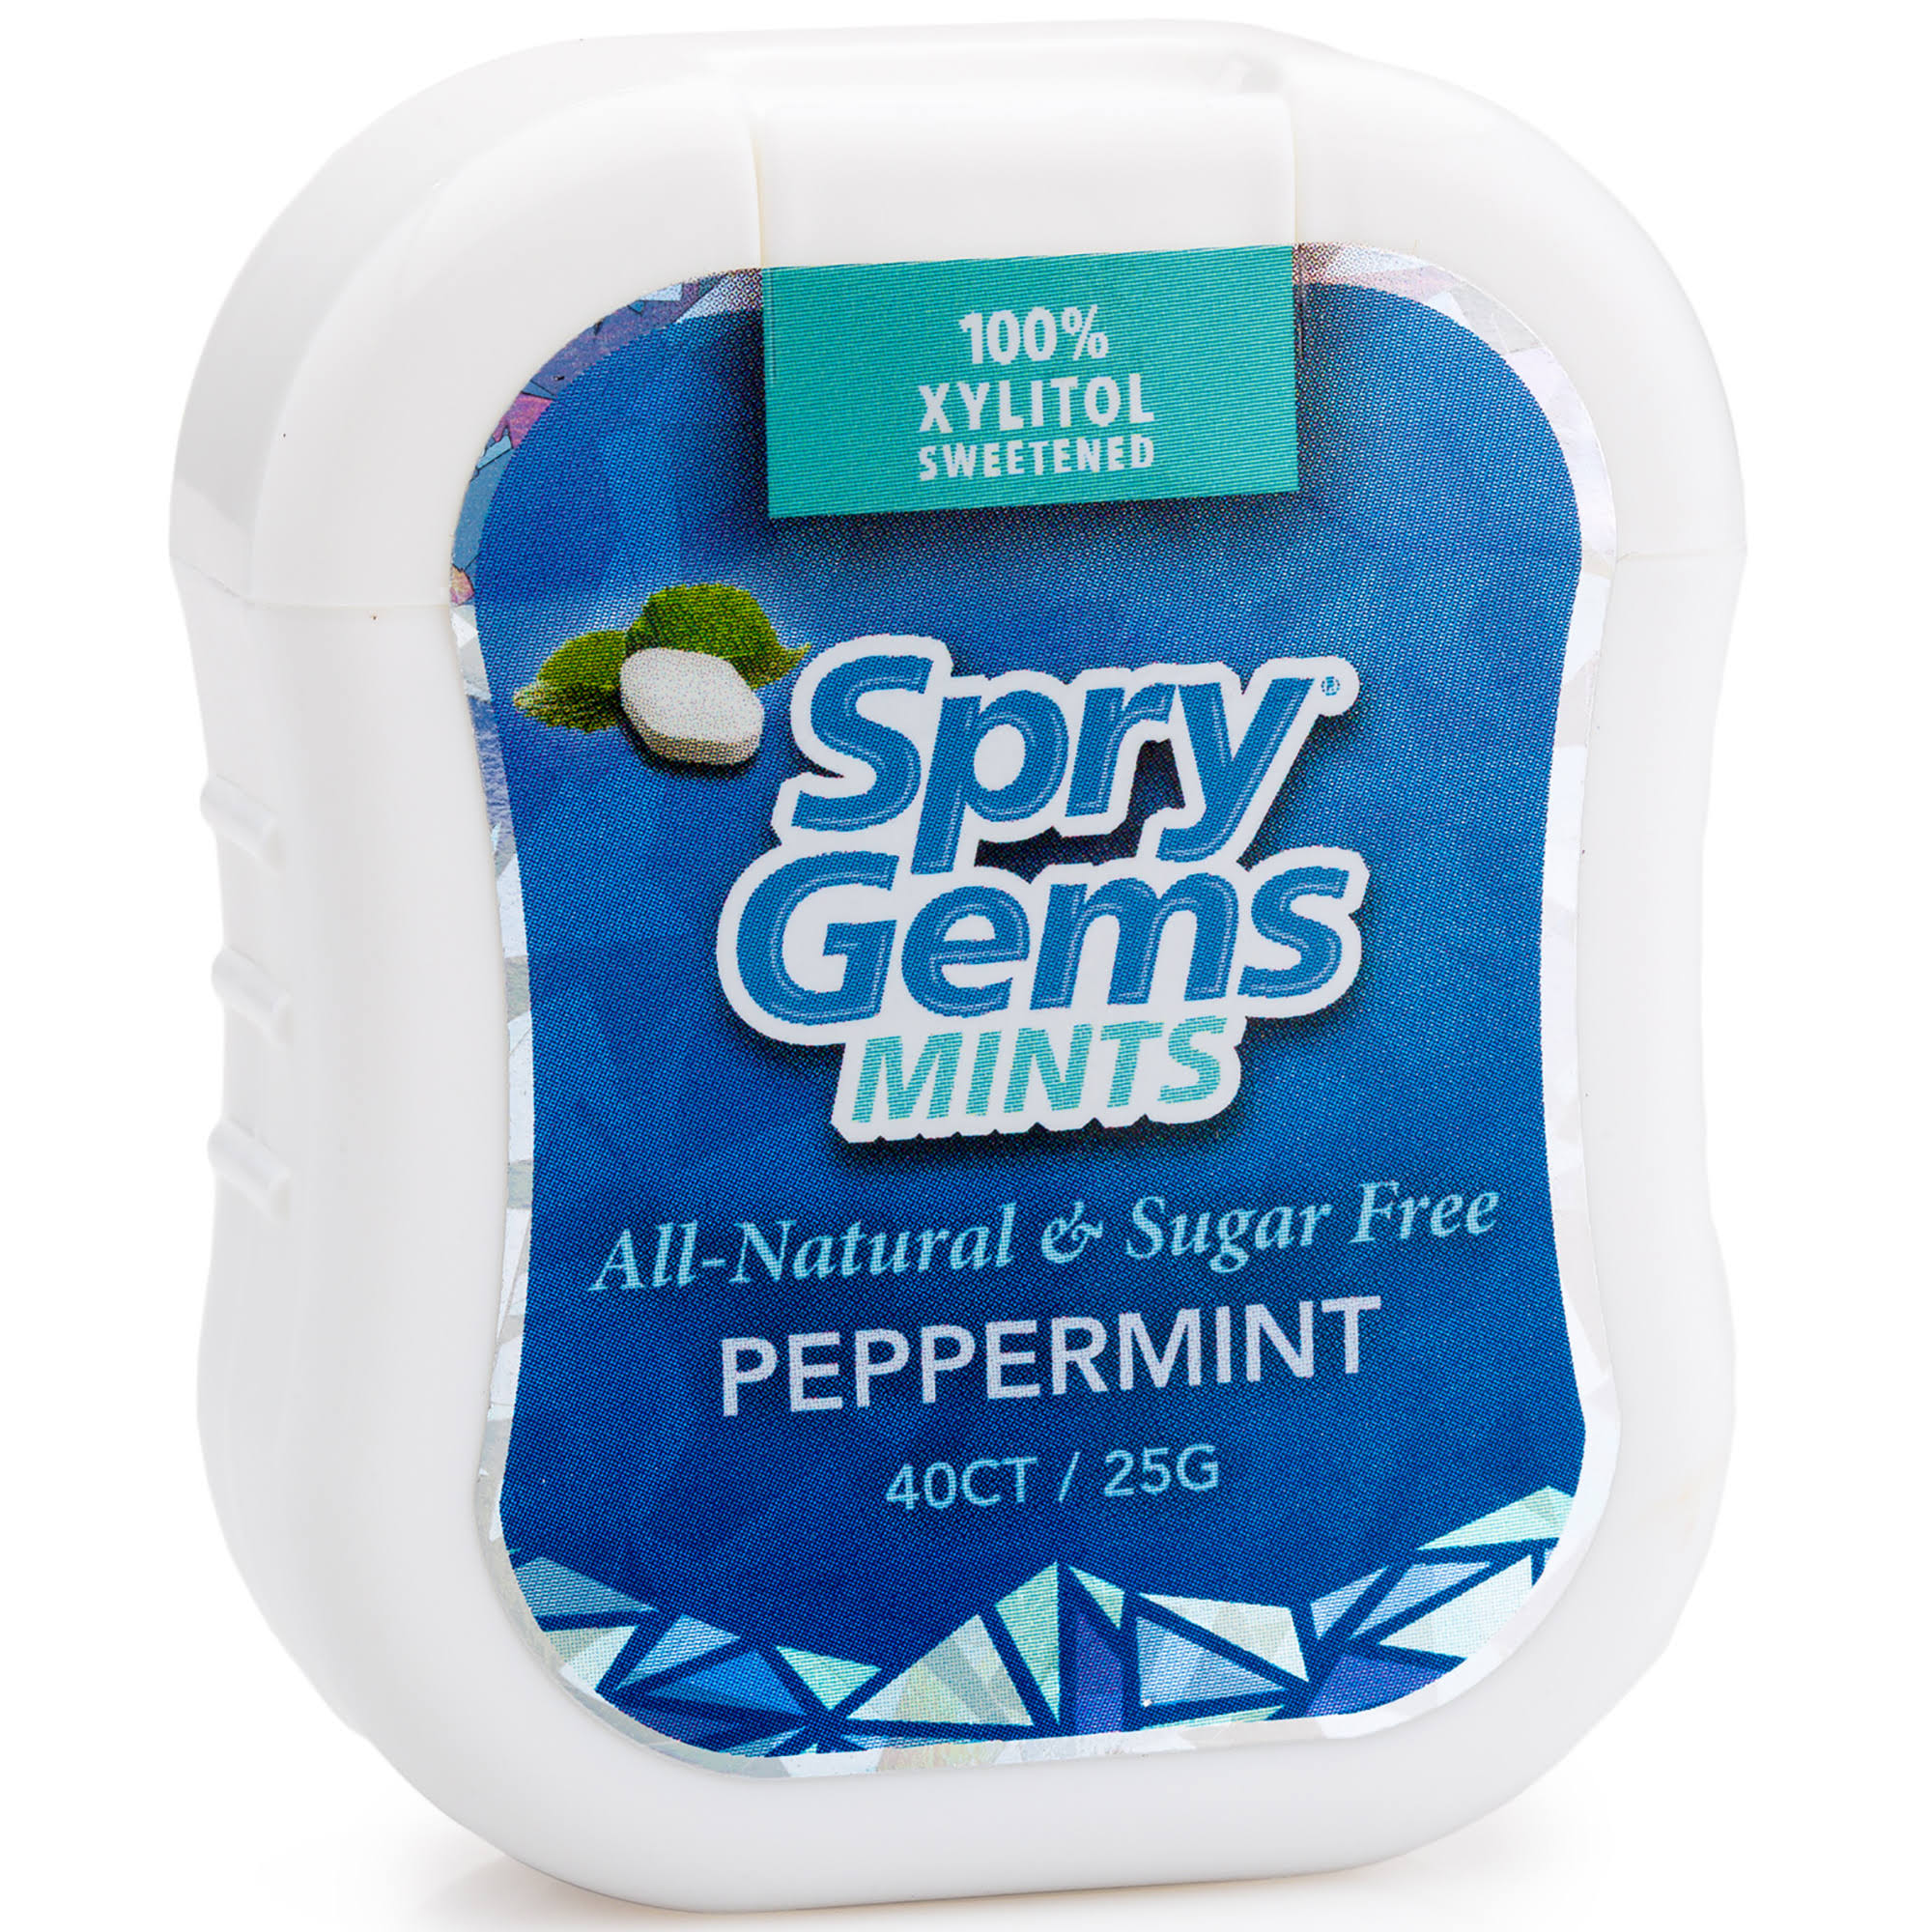 Spry Gems Peppermint - 40 count